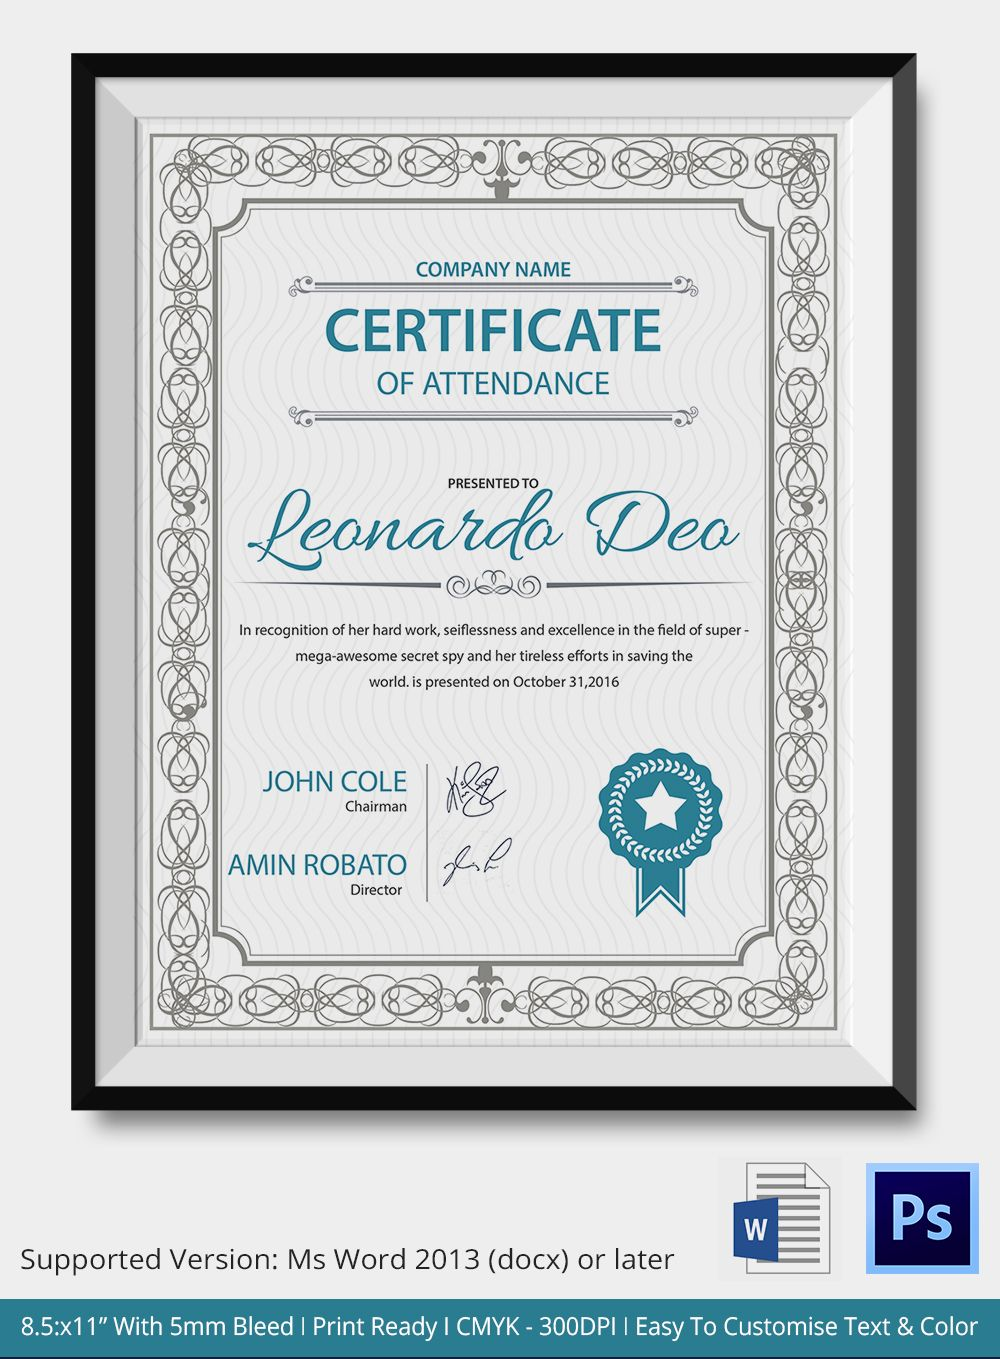 Professional editable certificate of attendance template sample professional editable certificate of attendance template sample for company with blue and gray color scheme yelopaper Images